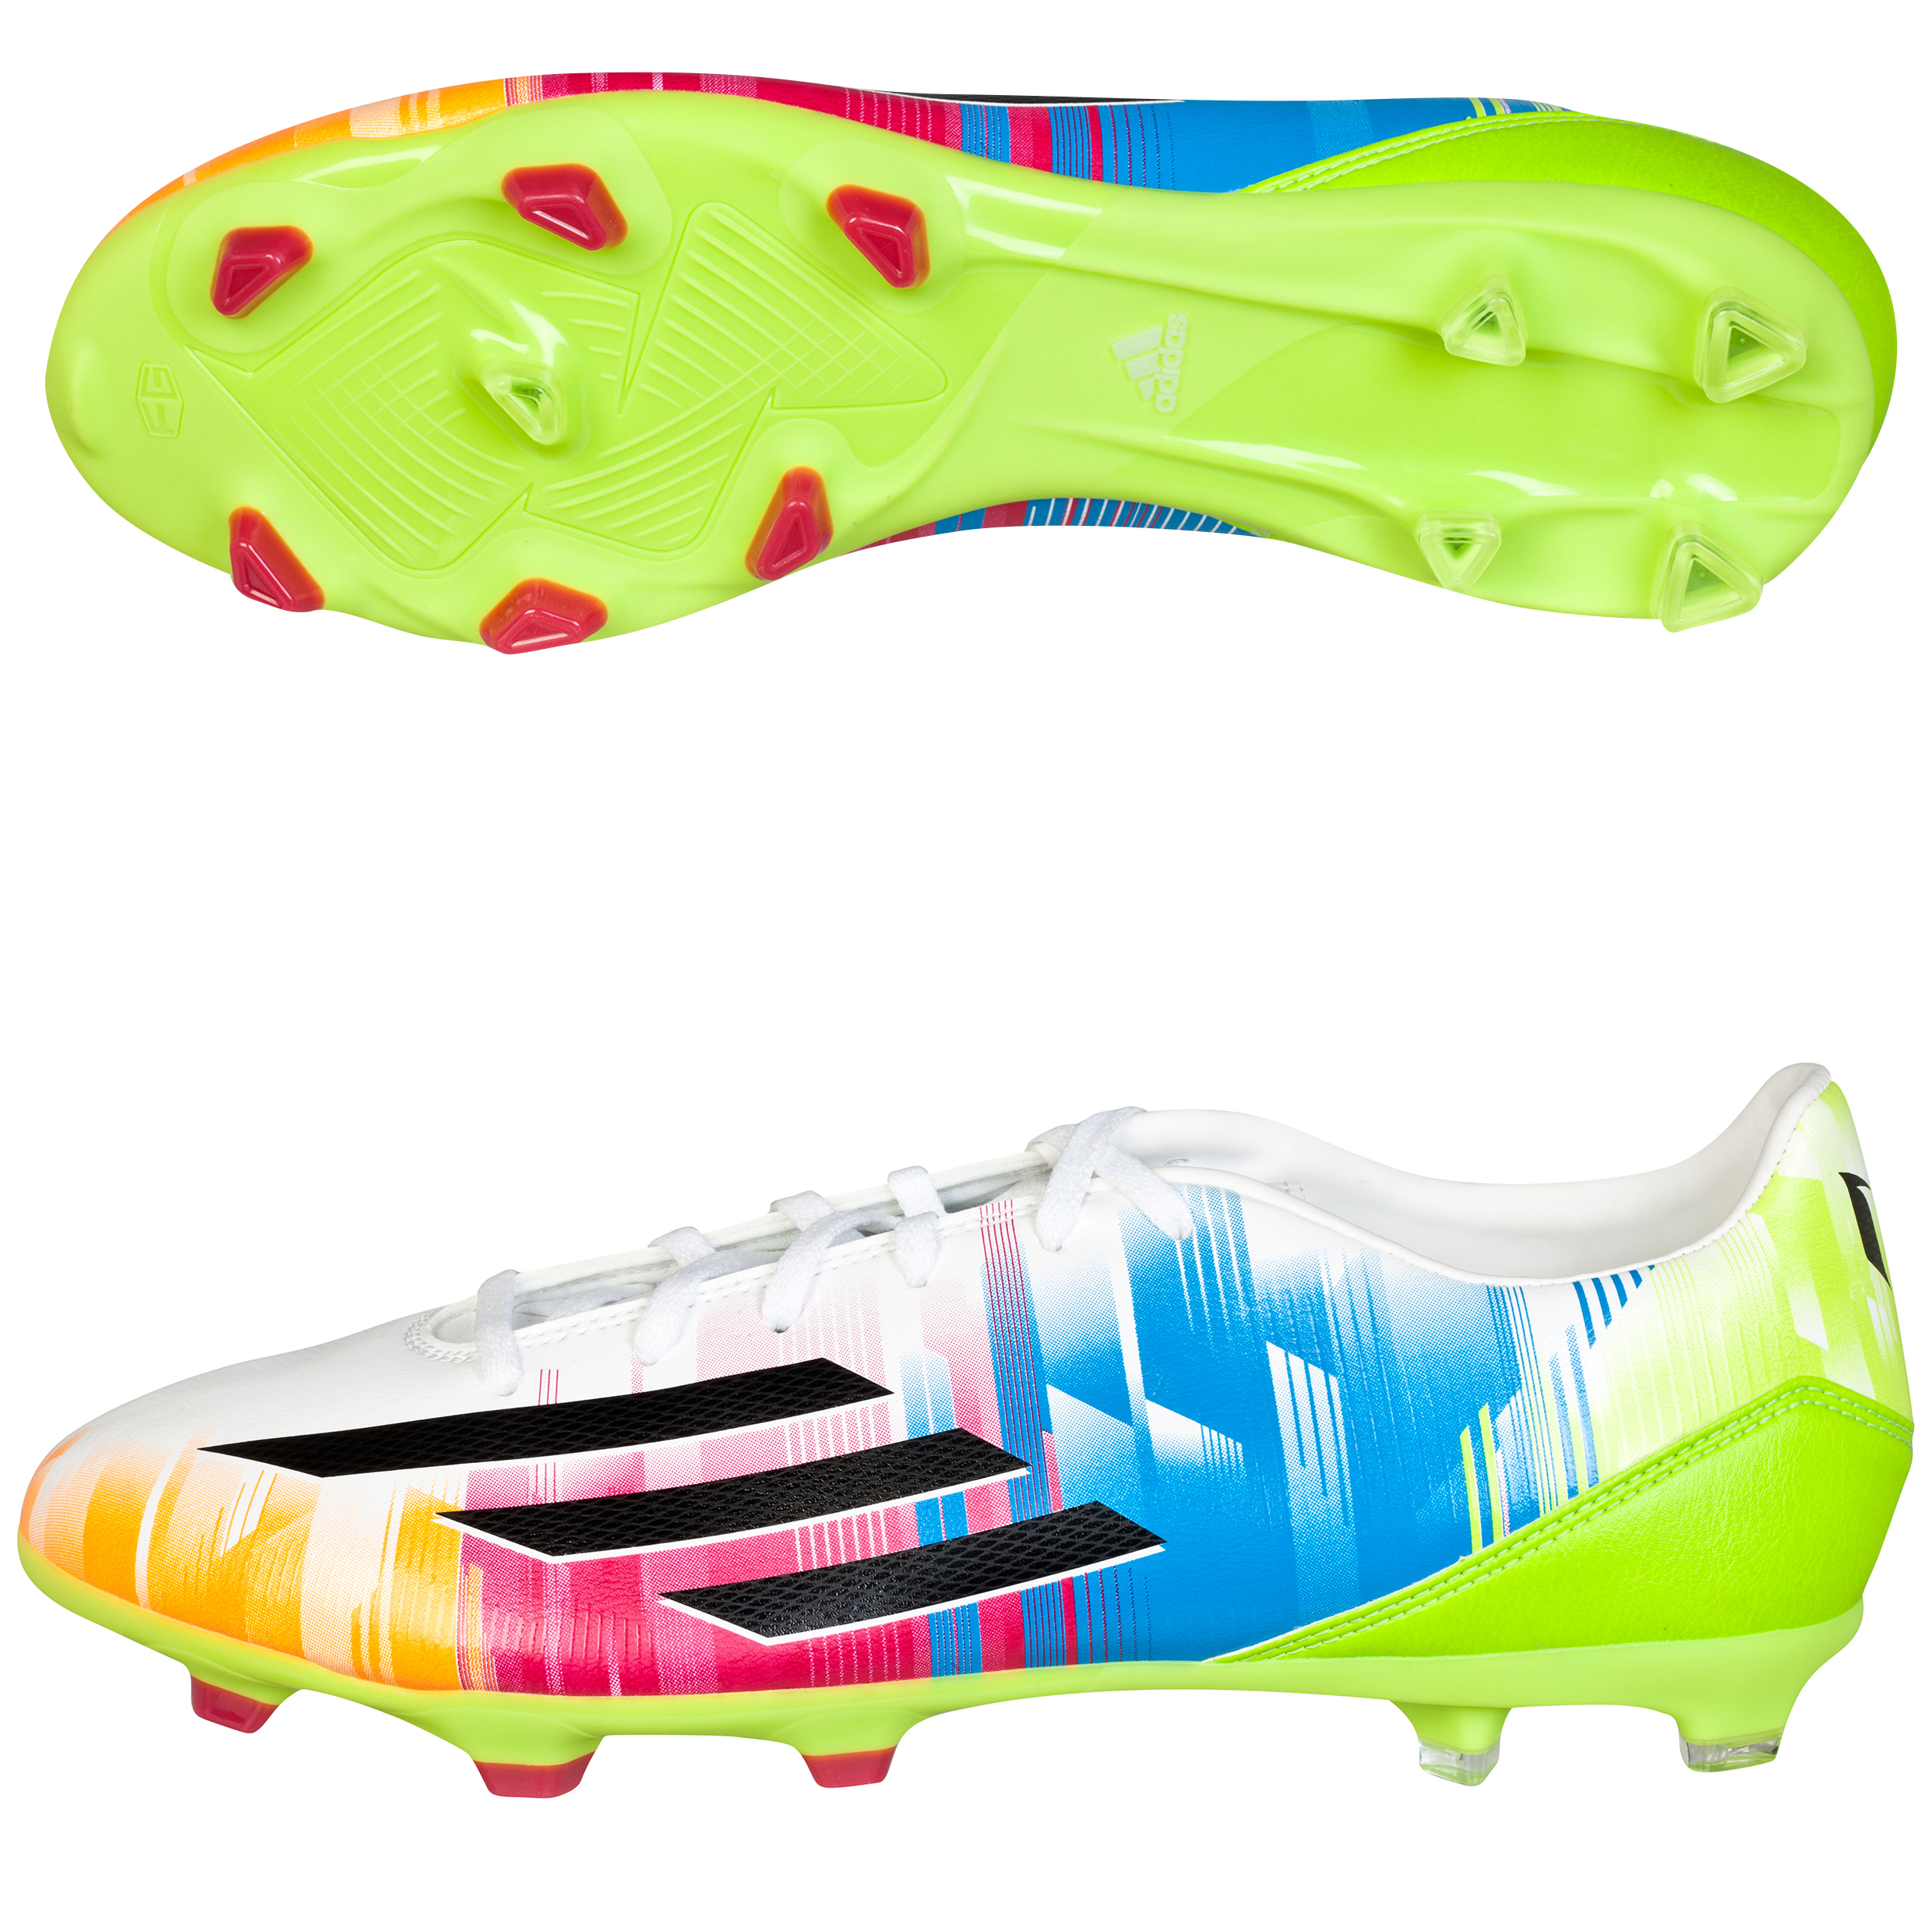 F10 Messi TRX FG White